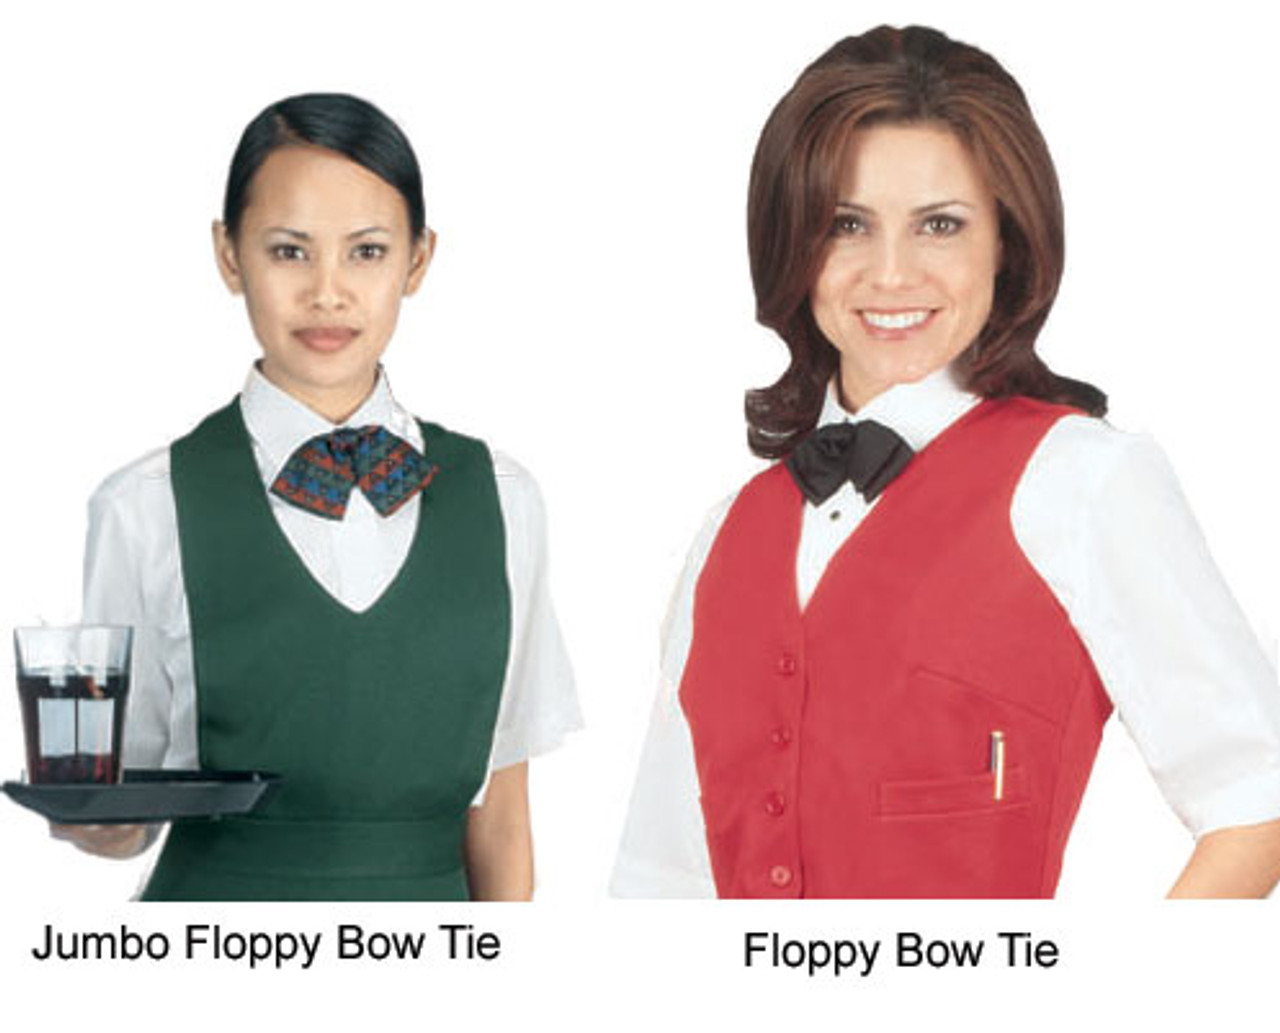 Floppy bow ties in action